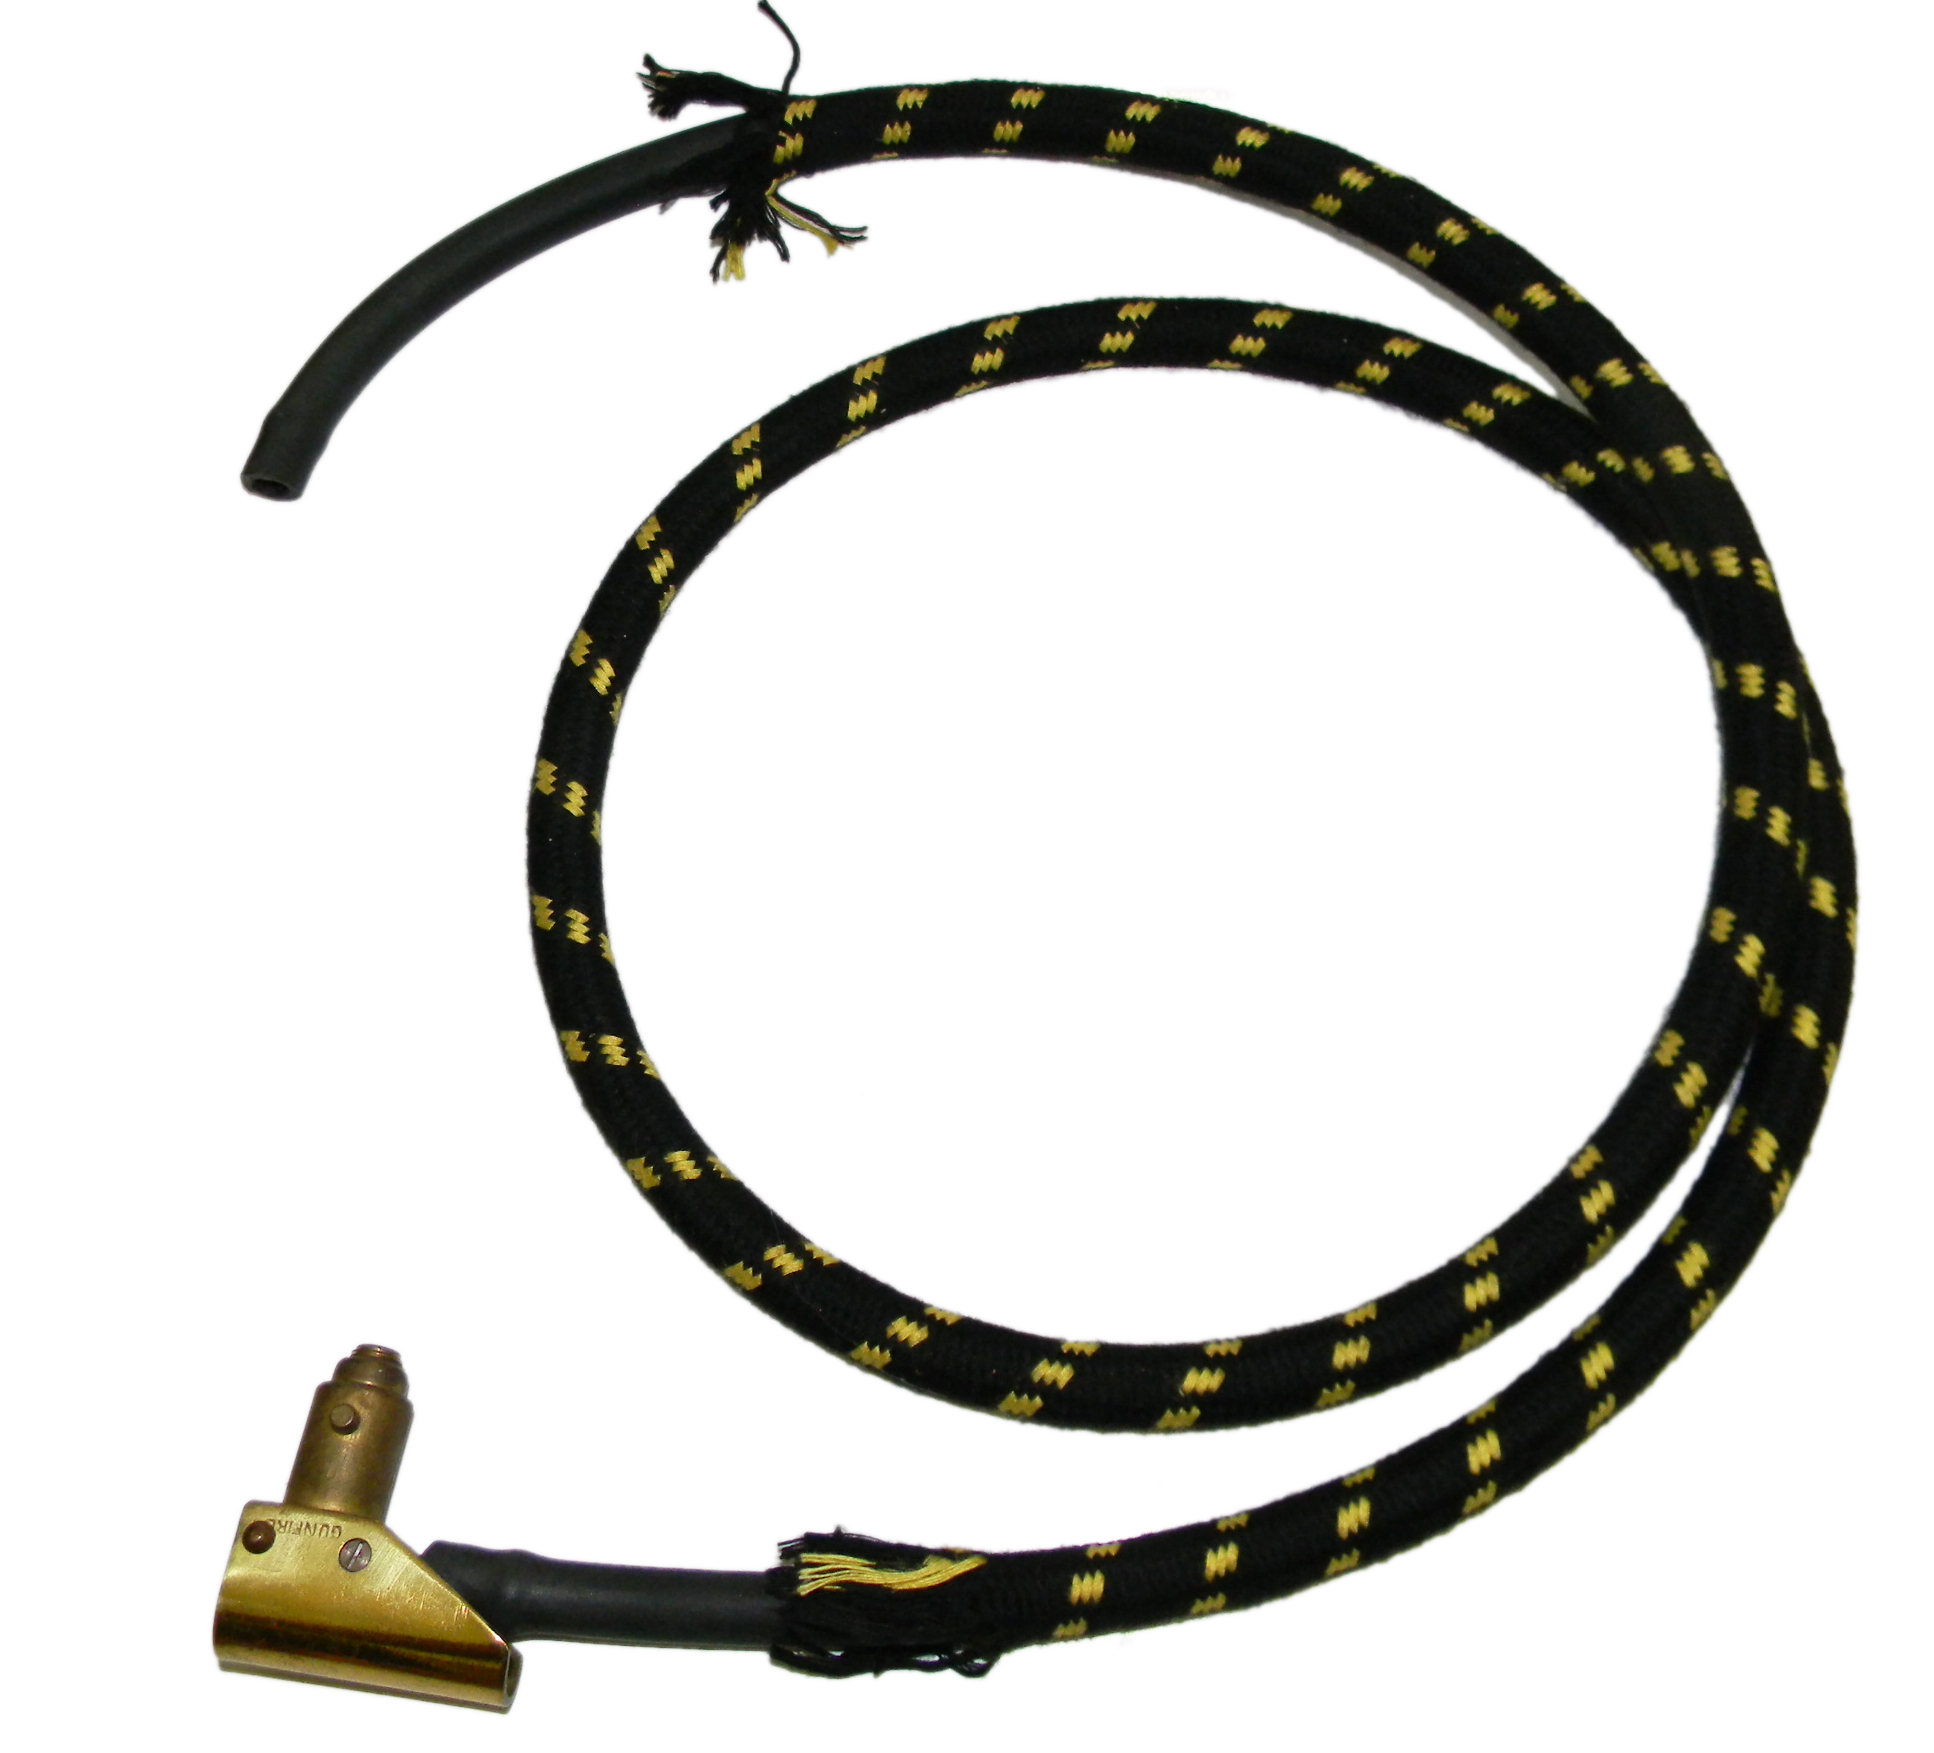 RAF Type D mask hose and connector